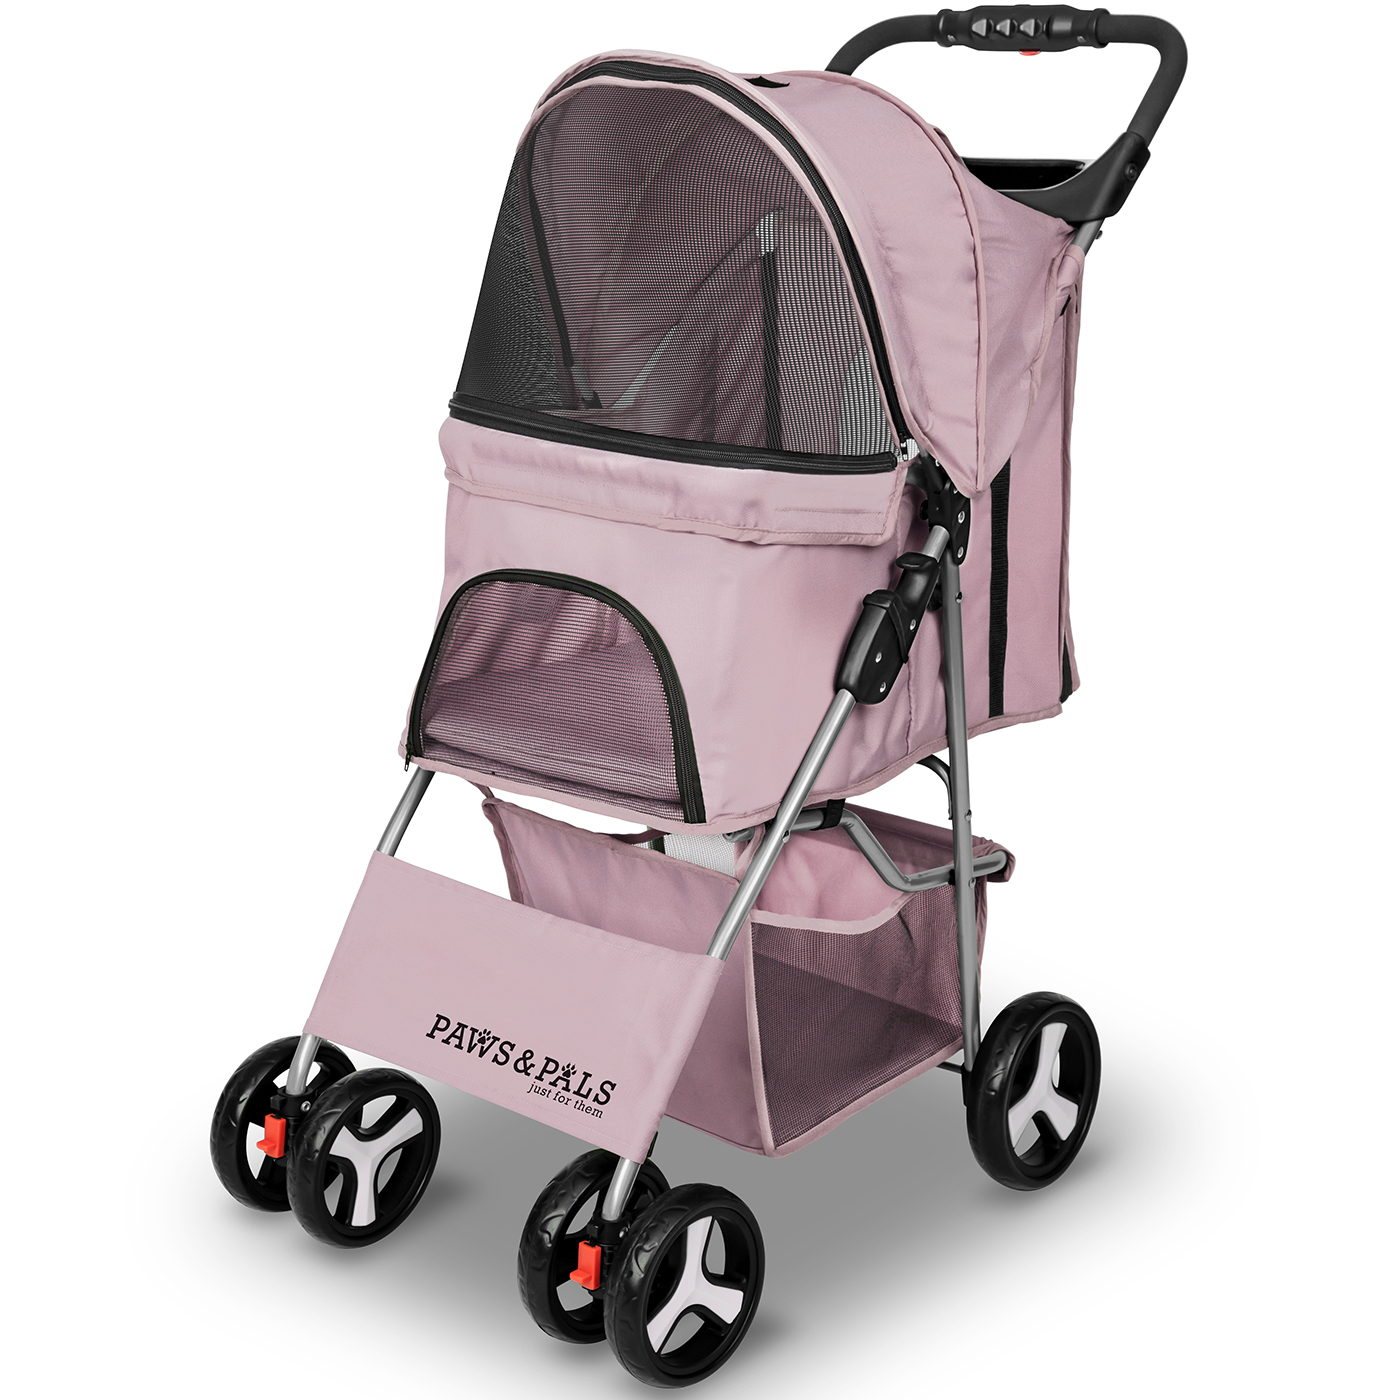 City Walk N Stride 4 Wheeler Pet Stroller for Dogs and Cats Paws & Pals